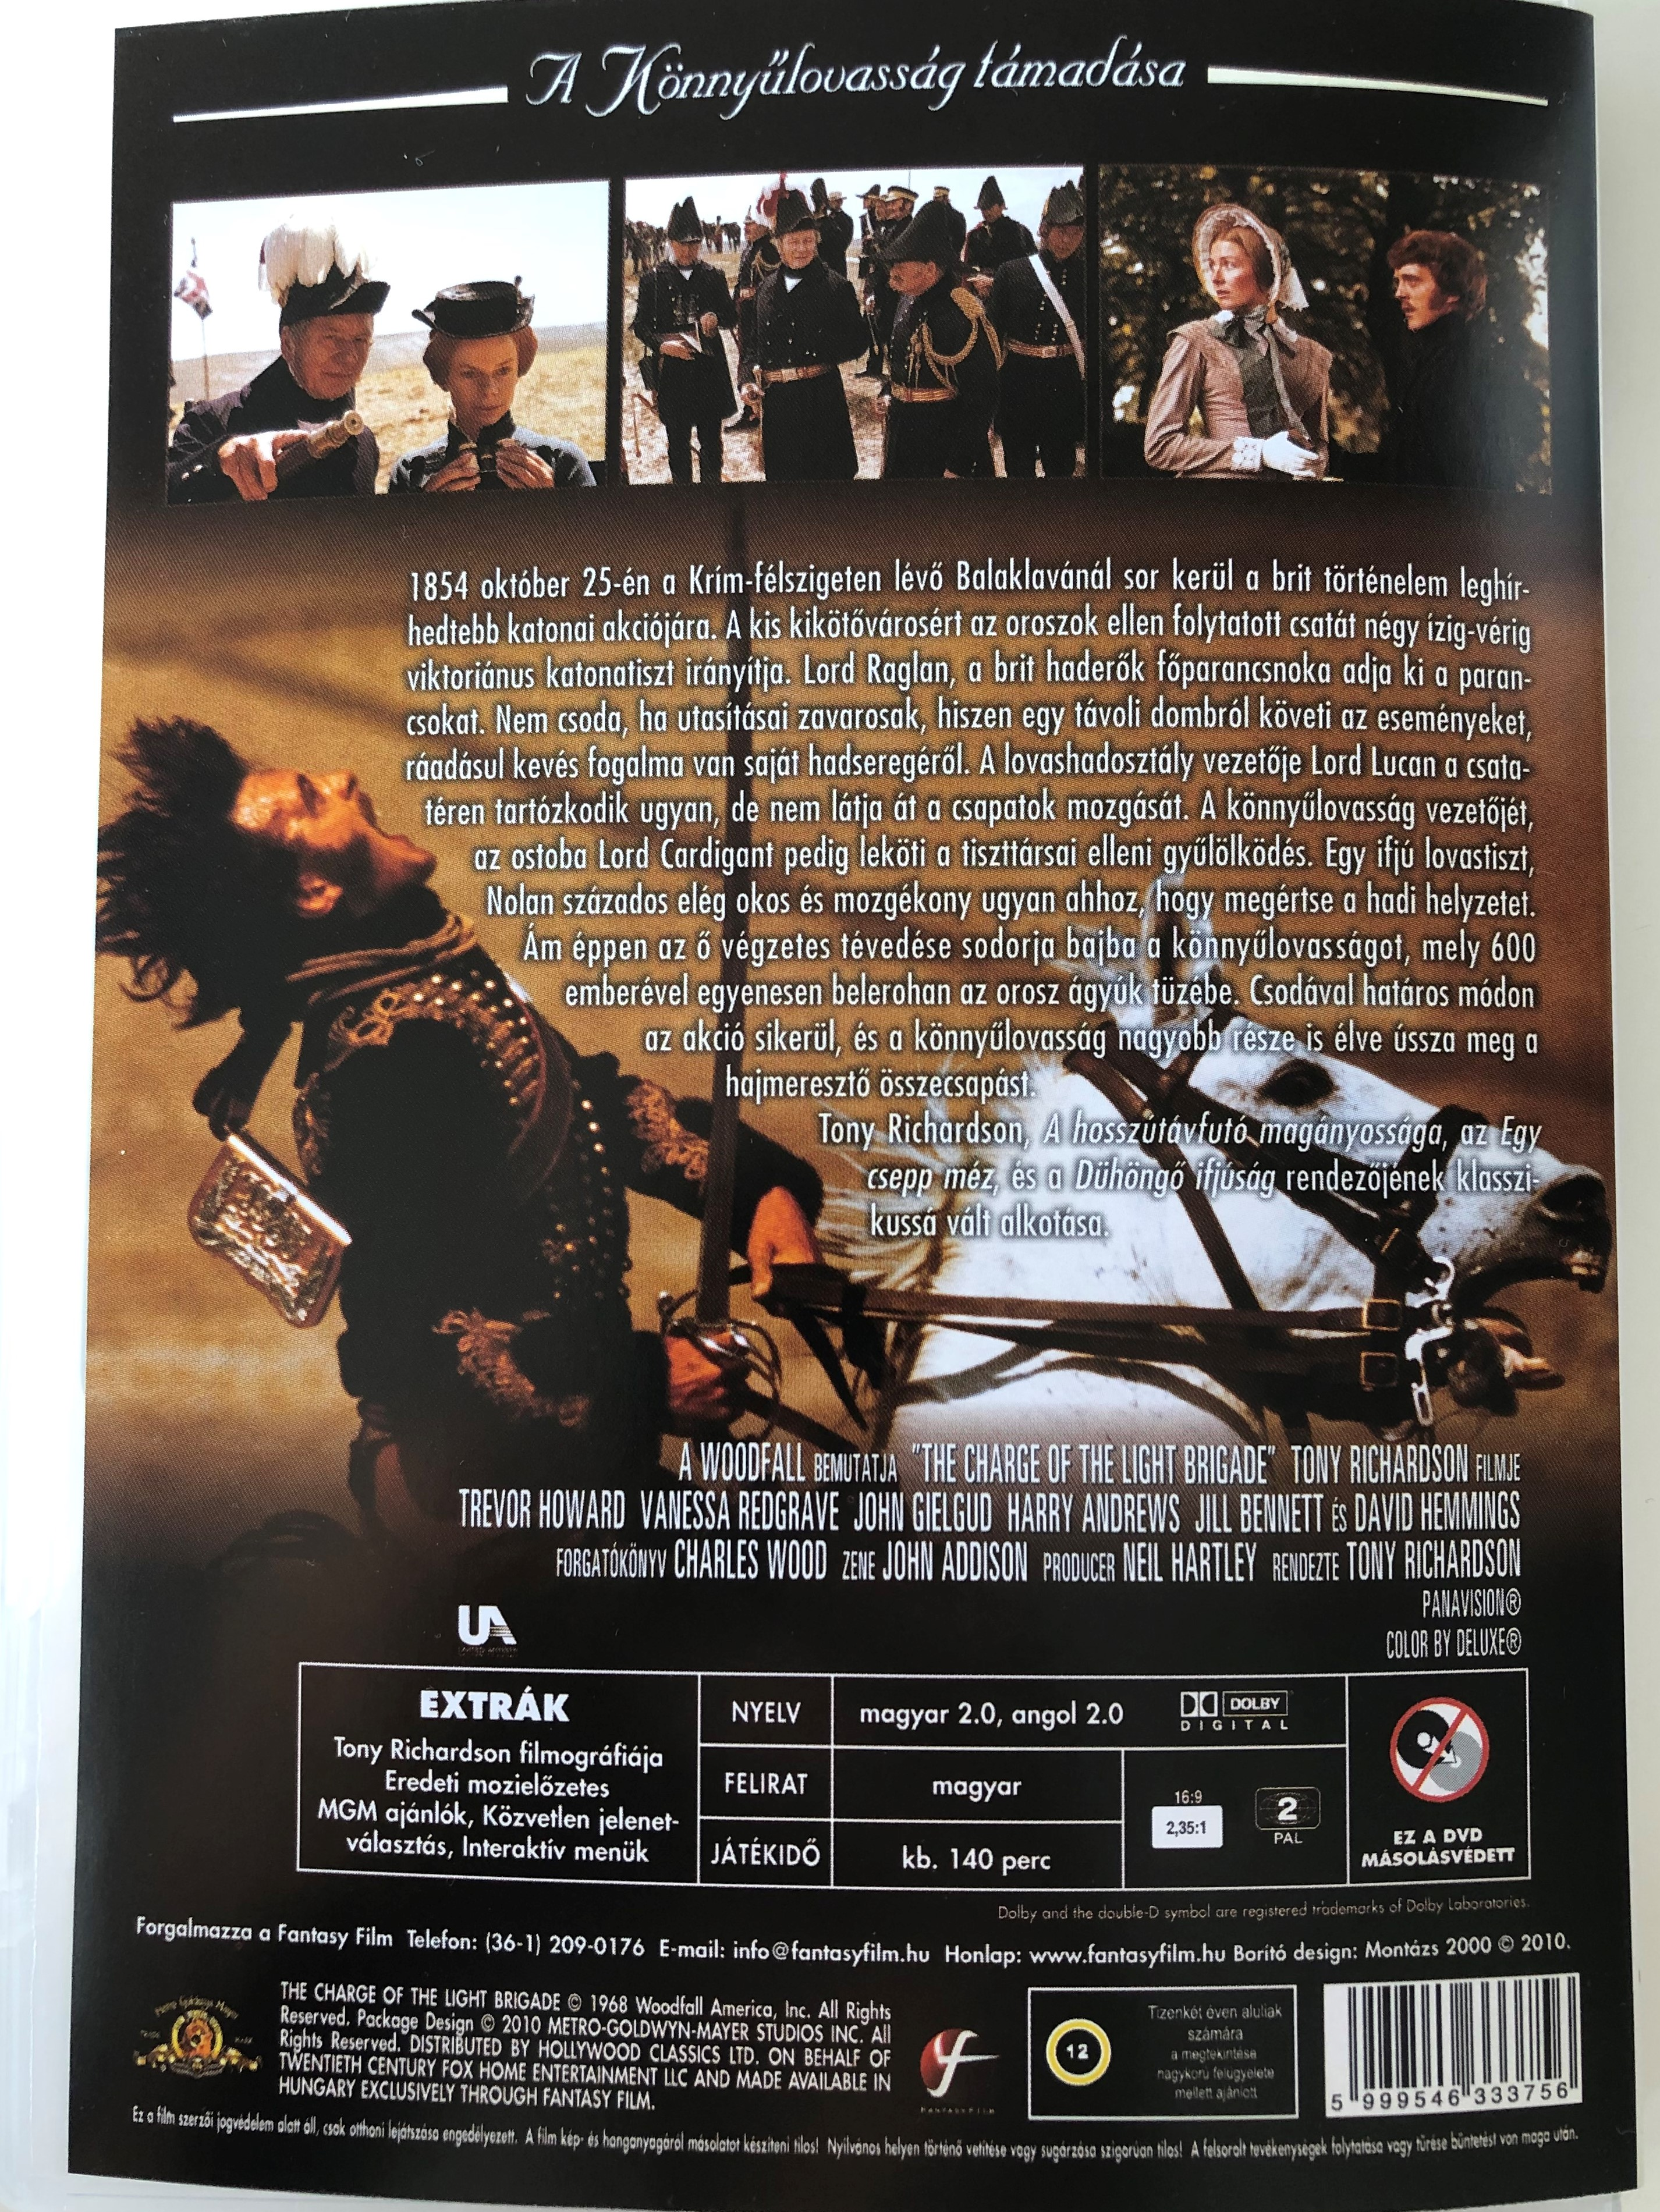 -the-charge-of-the-light-brigade-dvd-1968-a-k-nny-lovass-g-t-mad-sa-2.jpg